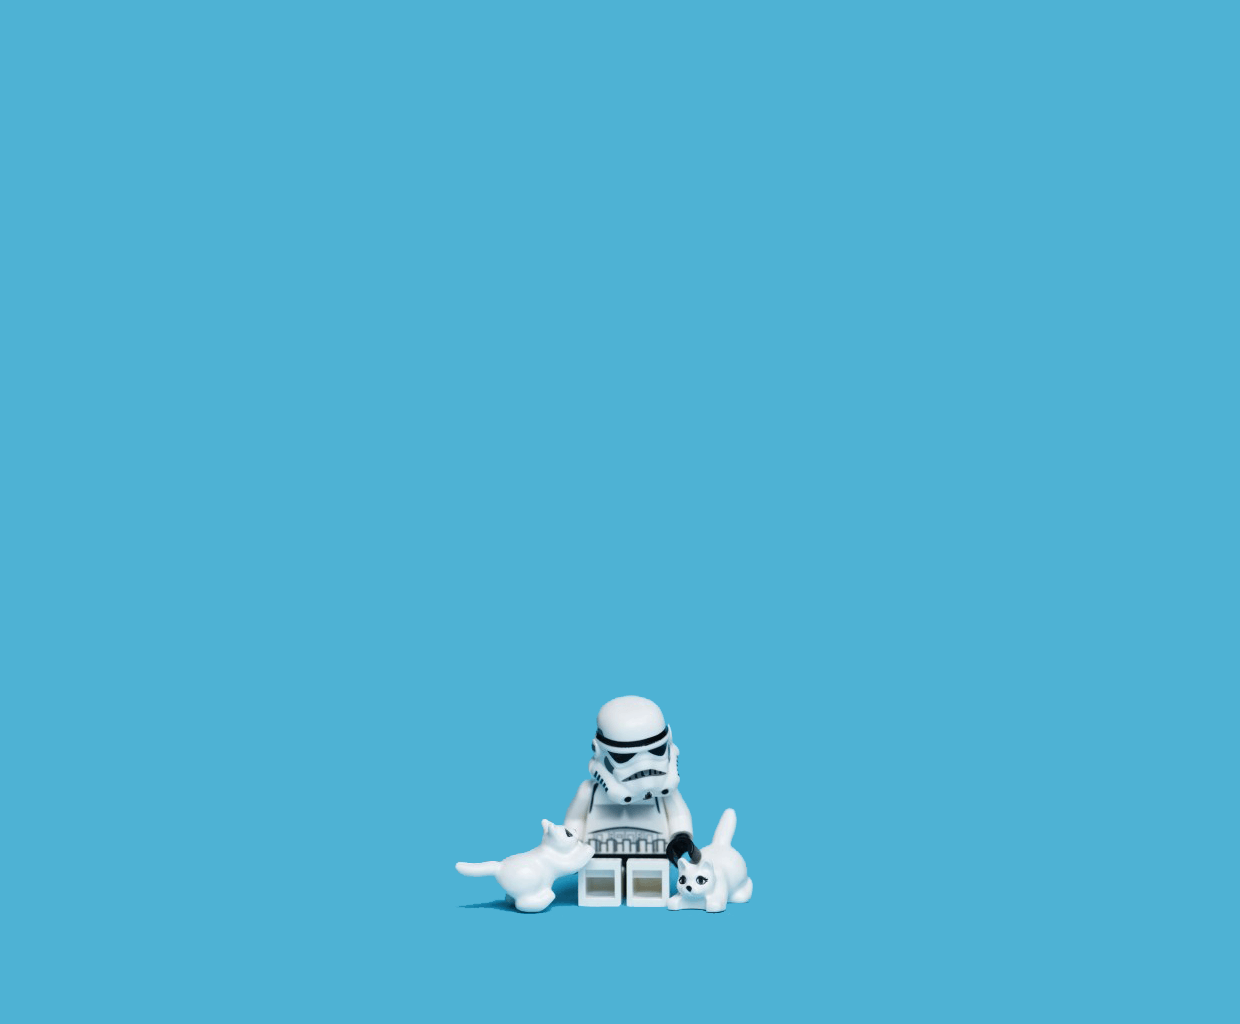 Funny Star Wars Wallpapers Top Free Funny Star Wars Backgrounds Wallpaperaccess